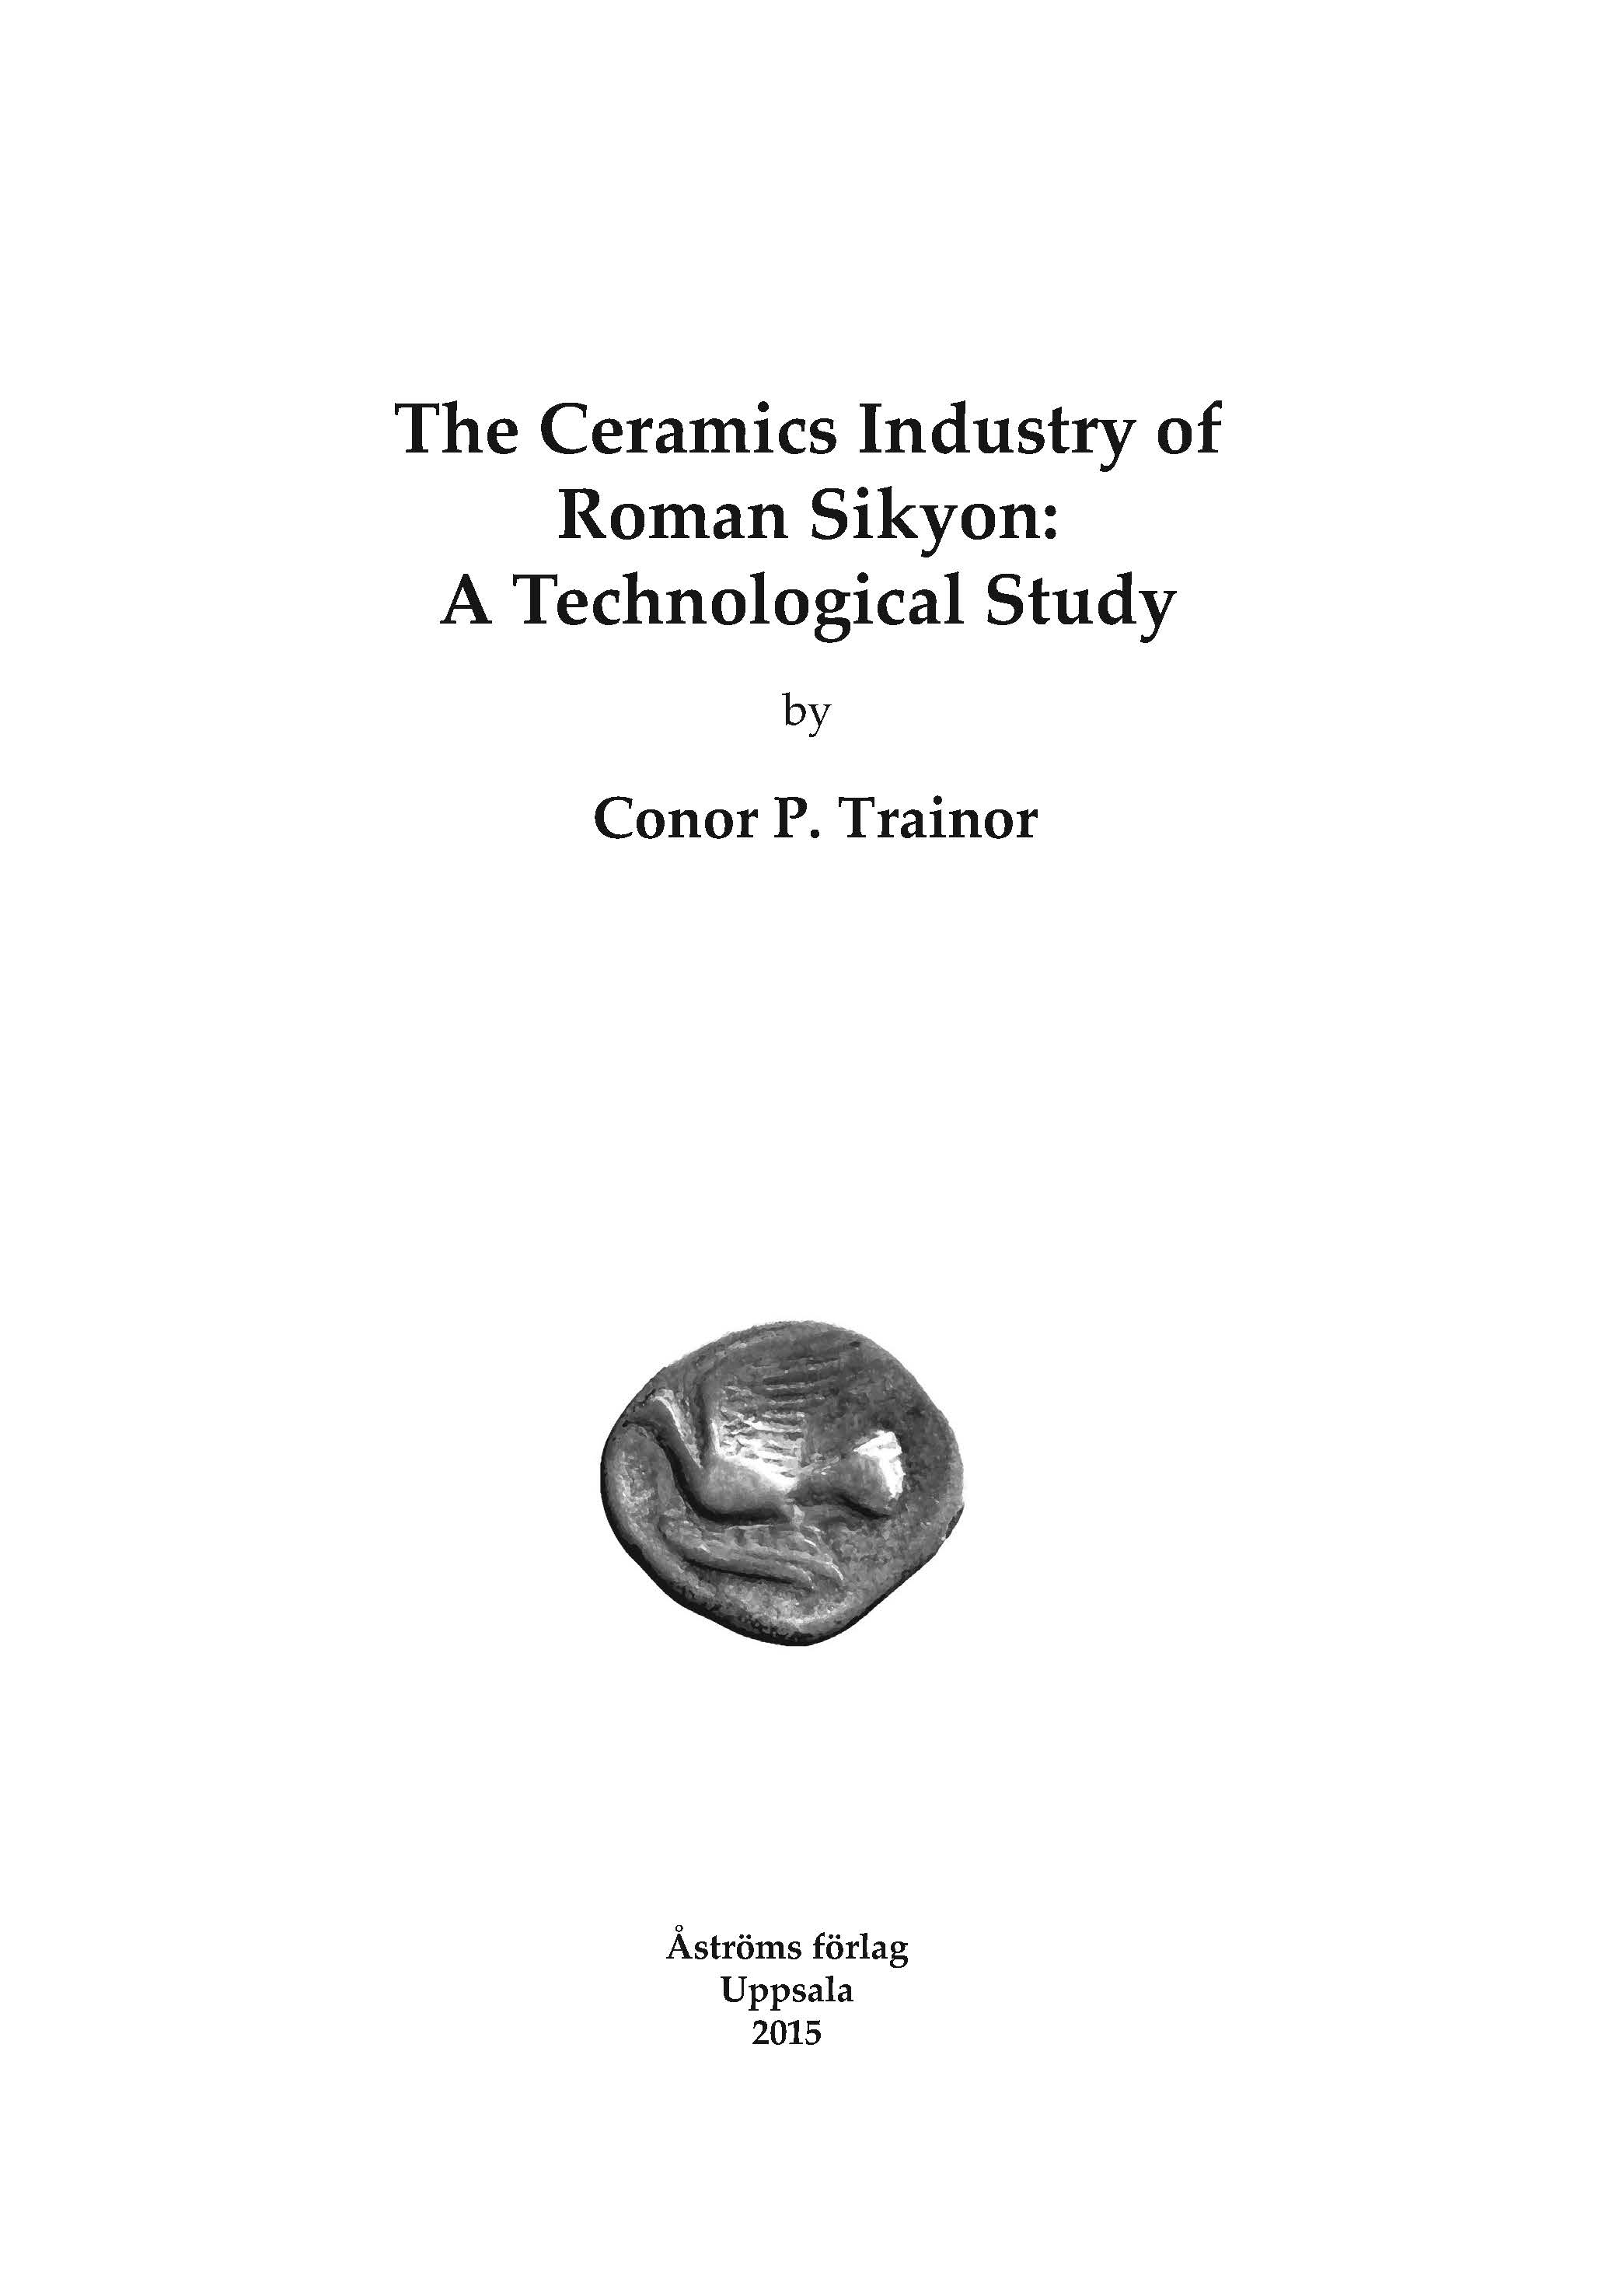 [The Ceramics Industry of Roman Sikyon: A Technological Study.]